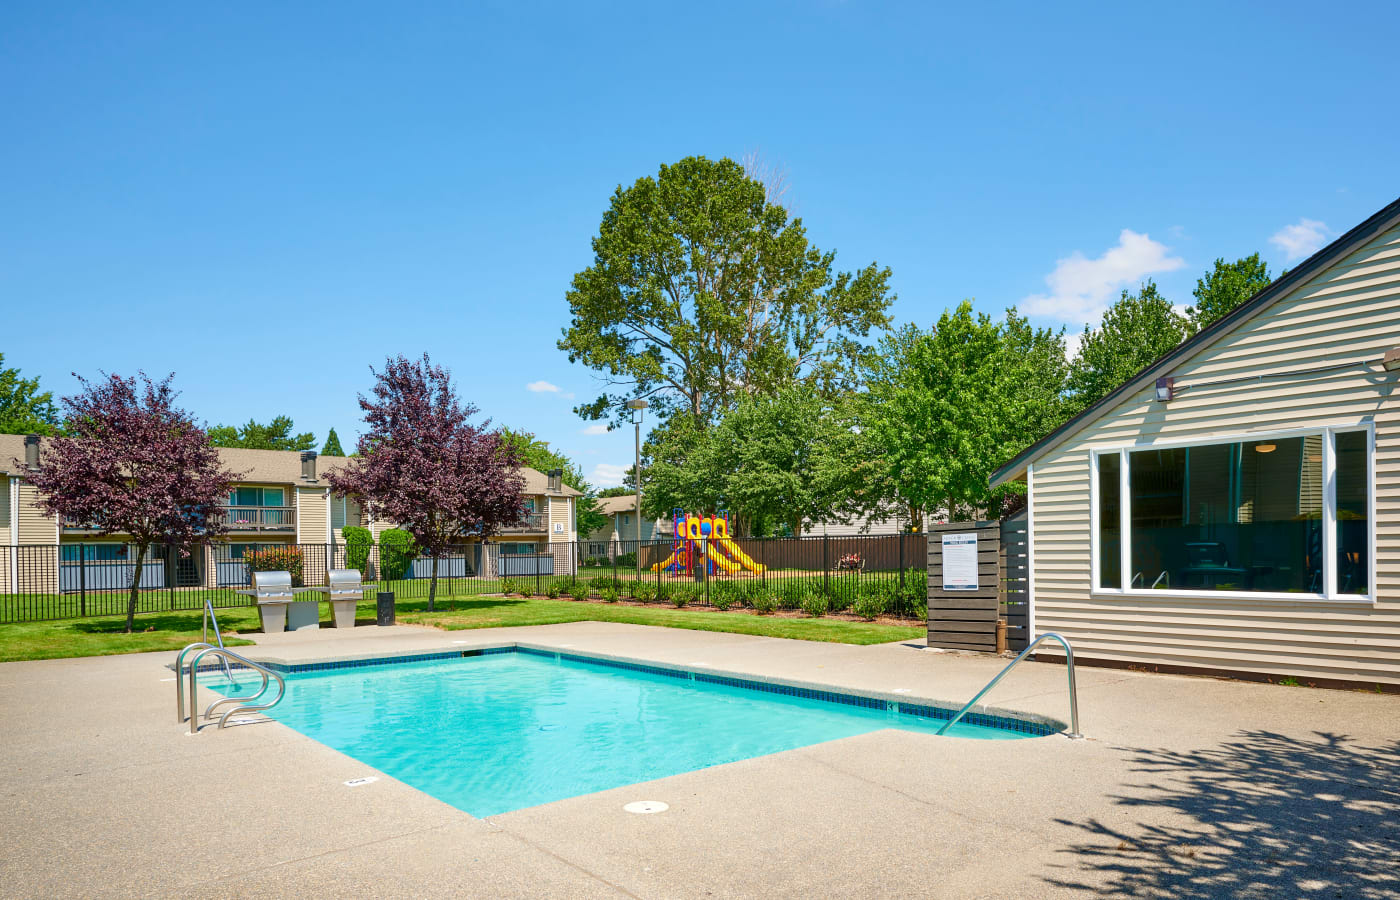 Pool area at Arbor Chase Apartment Homes in Kent, Washington